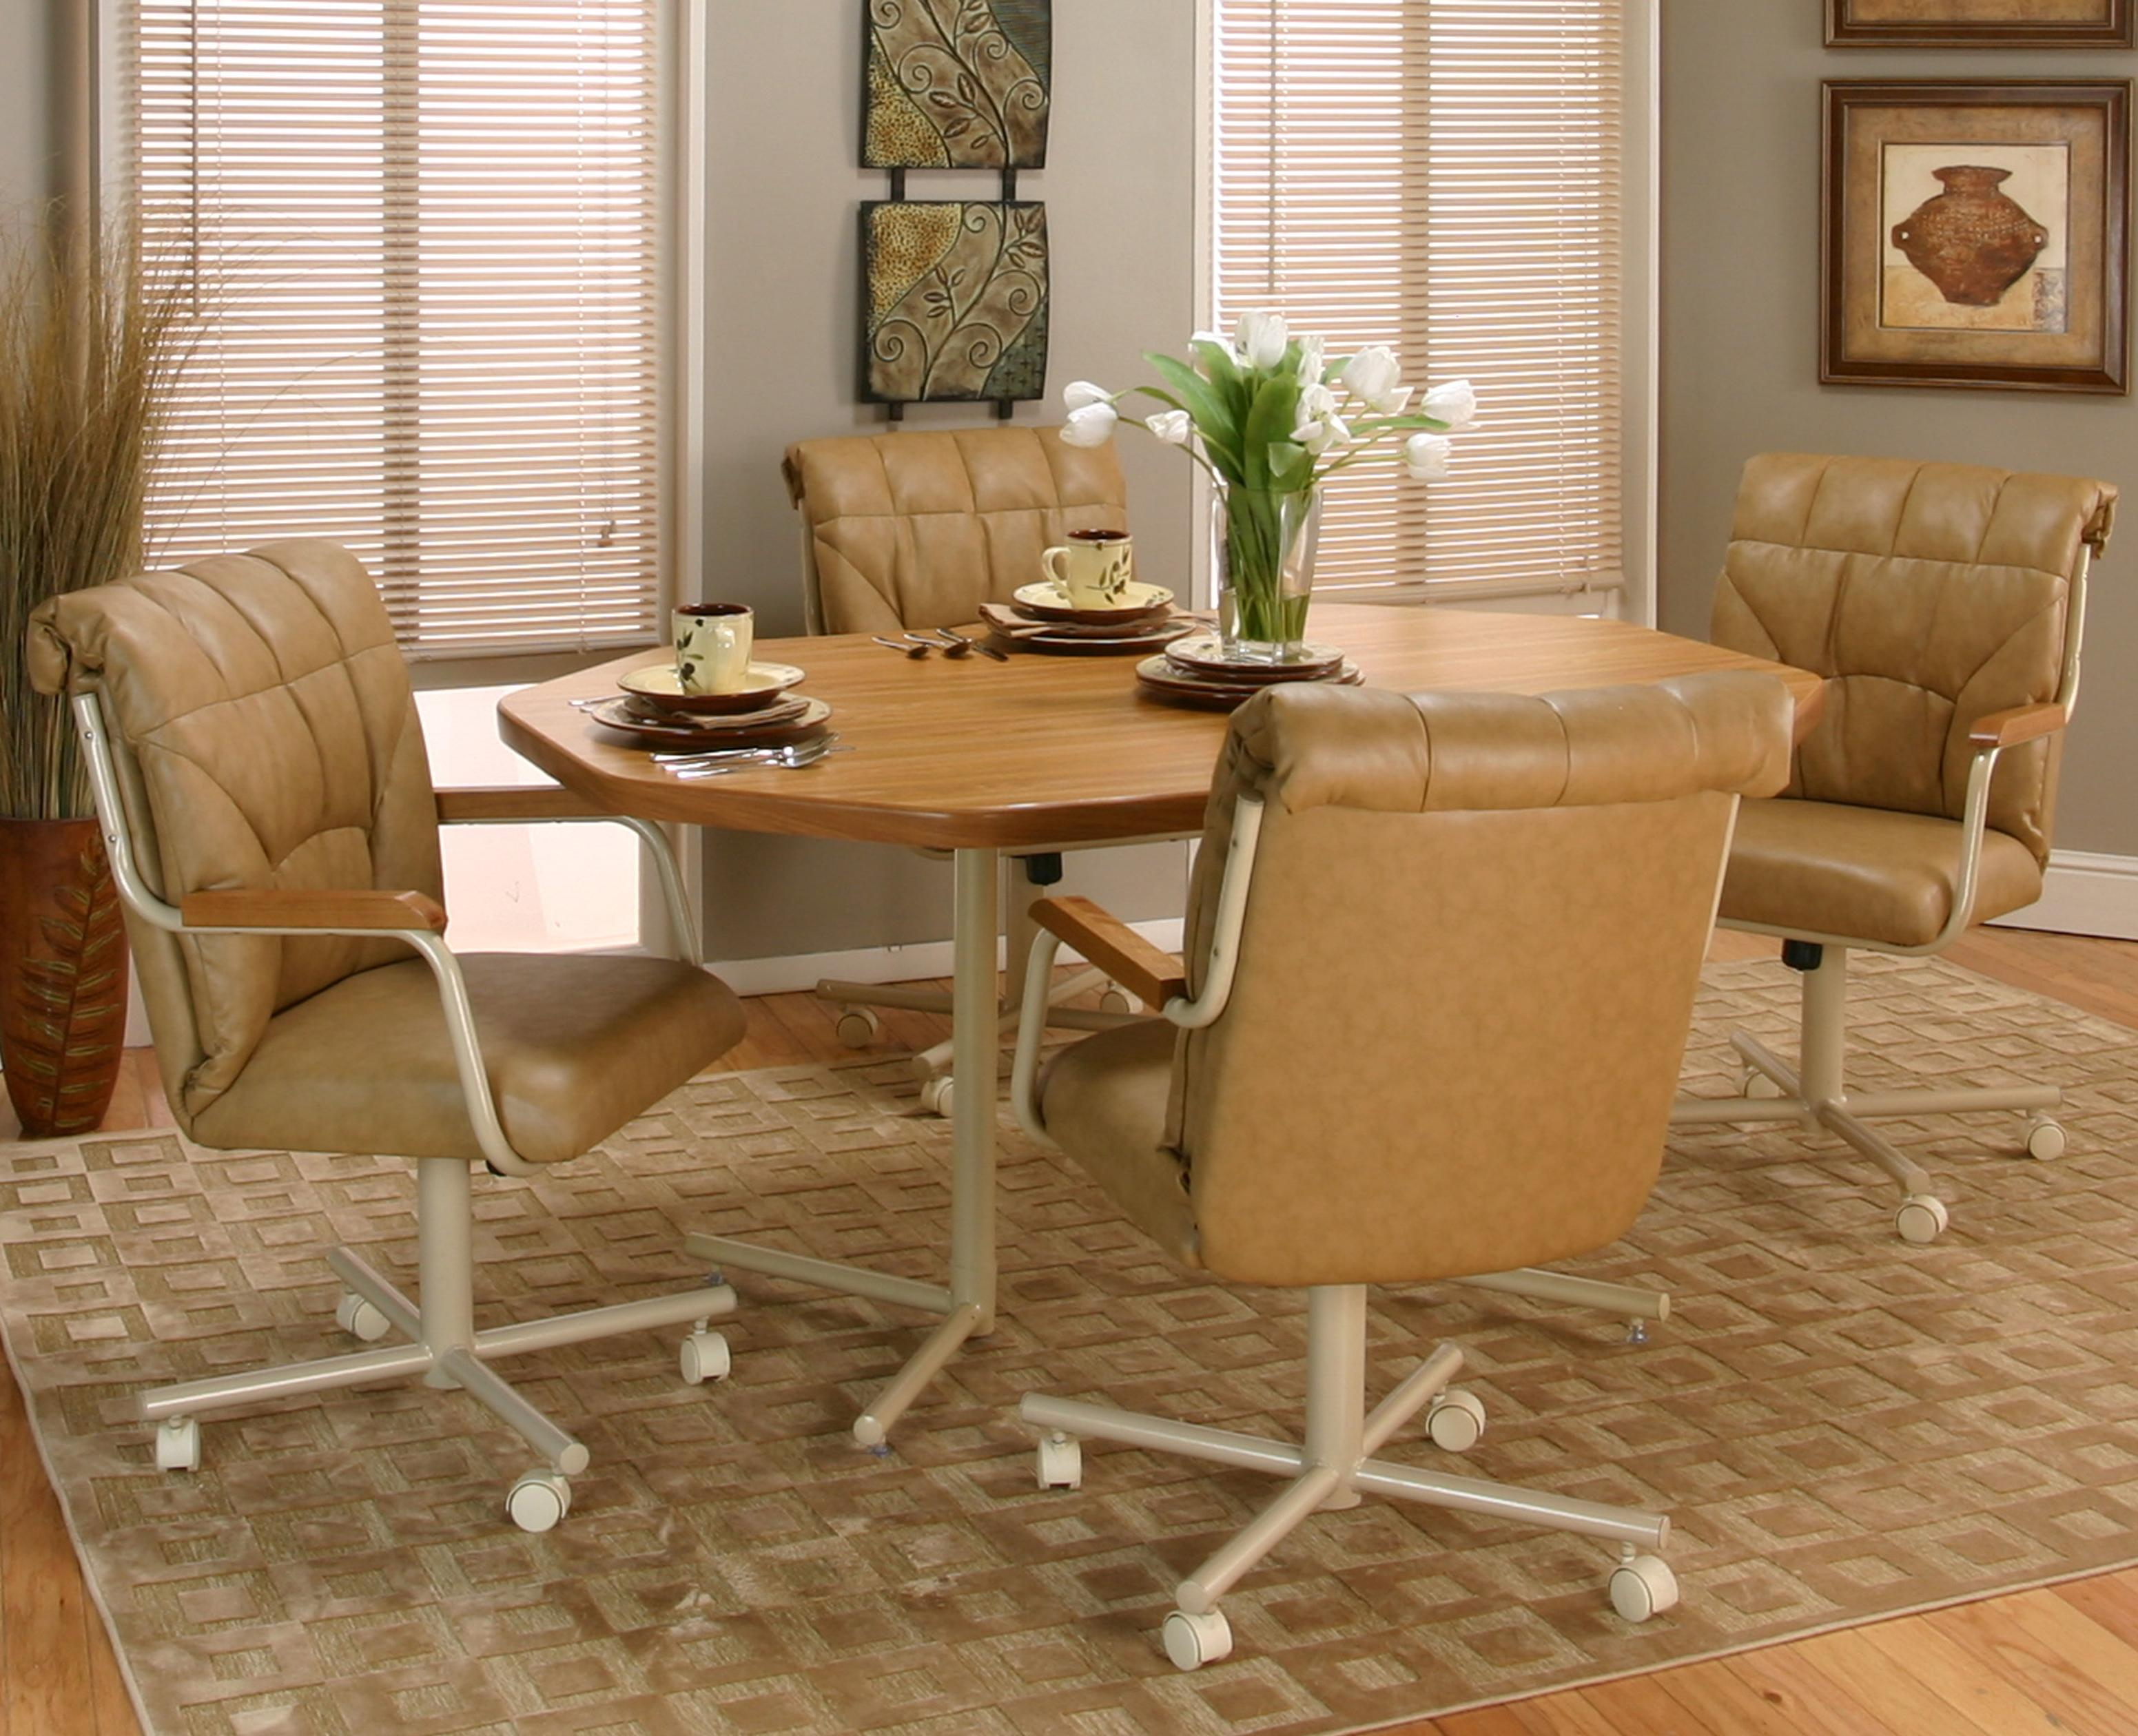 kitchen chairs with casters Tilt Swivel Chair